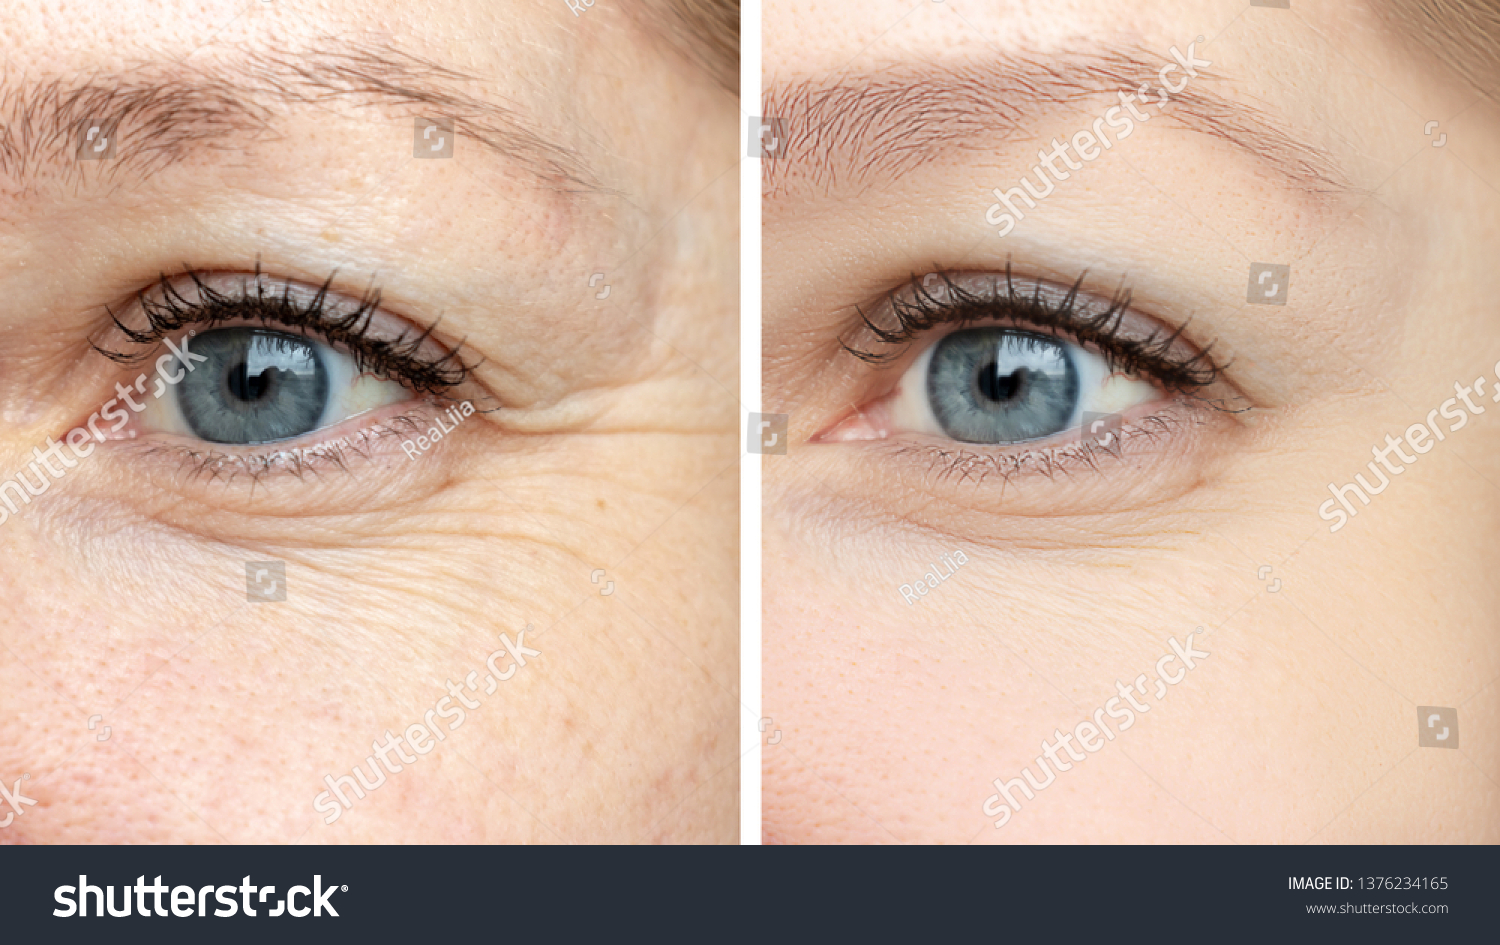 Woman face, eye wrinkles before and after treatment - the result of rejuvenating cosmetological procedures of biorevitalization, face lifting and pigment spots removal. #1376234165